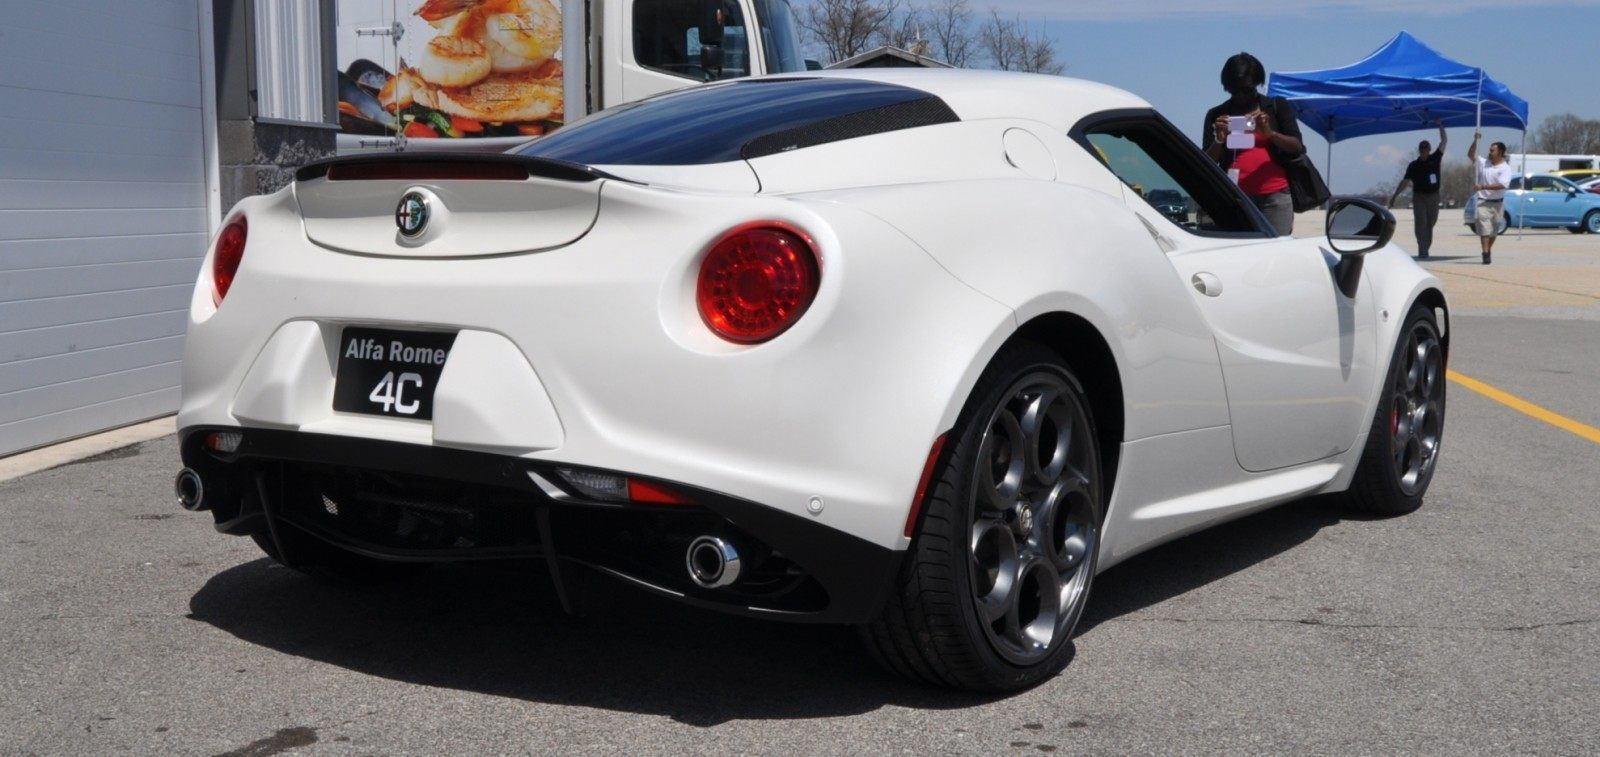 Gorgeous 2015 Alfa-Romeo 4C Revealed in Full USA Trim + New Headlights! 24